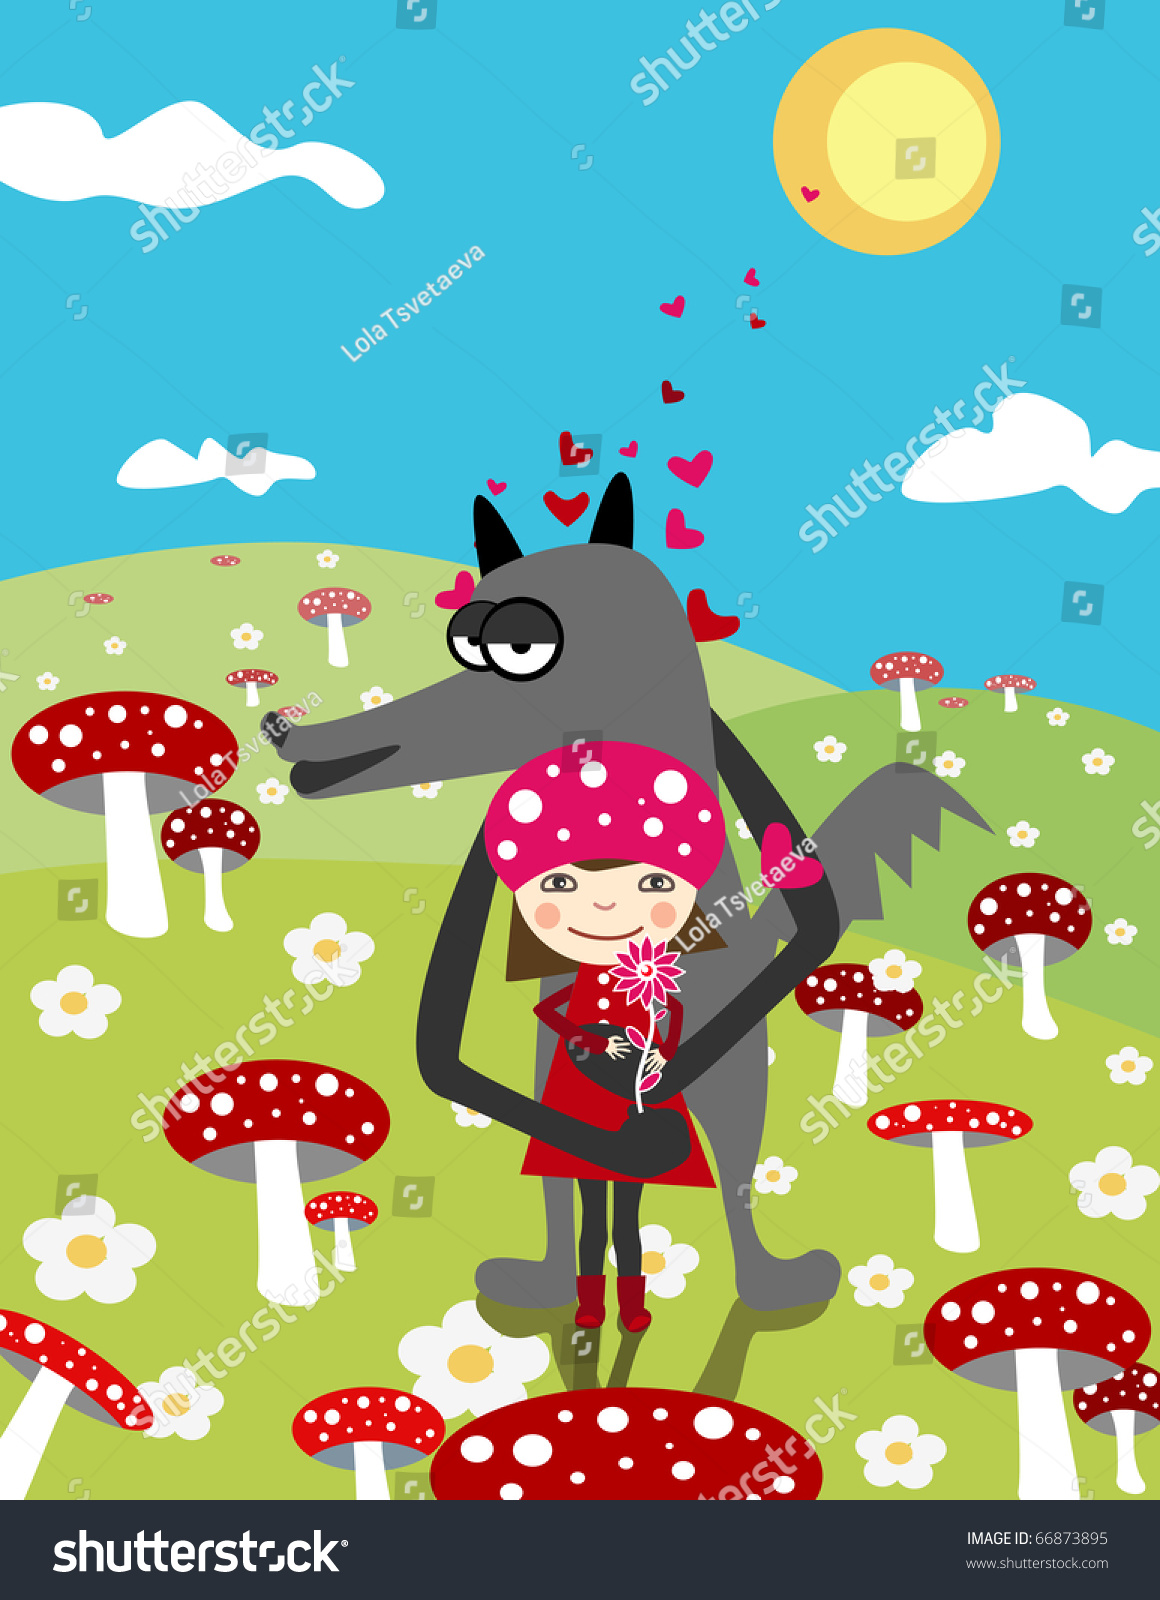 Little red riding hood wolf love stock vector 66873895 shutterstock little red riding hood and wolf love day scene with mushrooms buycottarizona